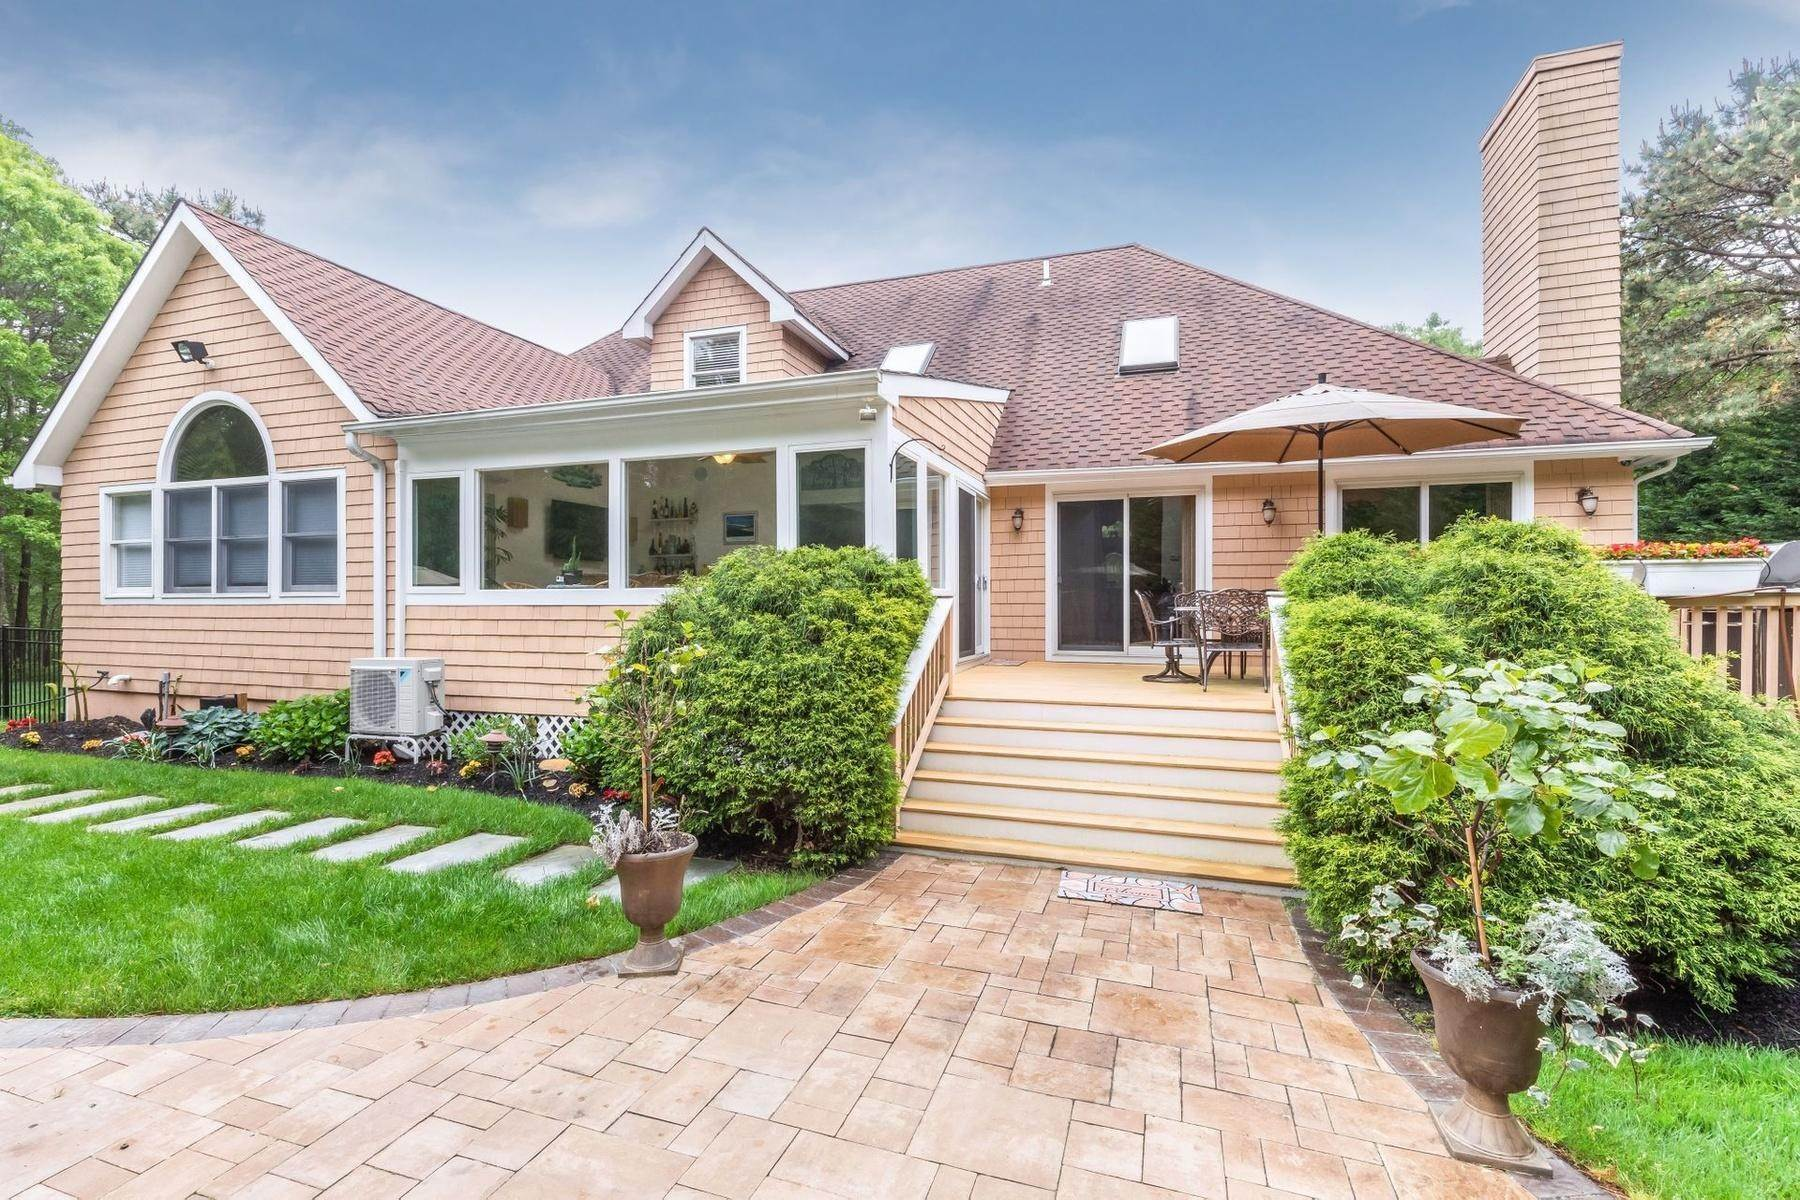 21. Single Family Home at Upscale Home In The Pines With Inground Heated Pool East Quogue, NY 11942